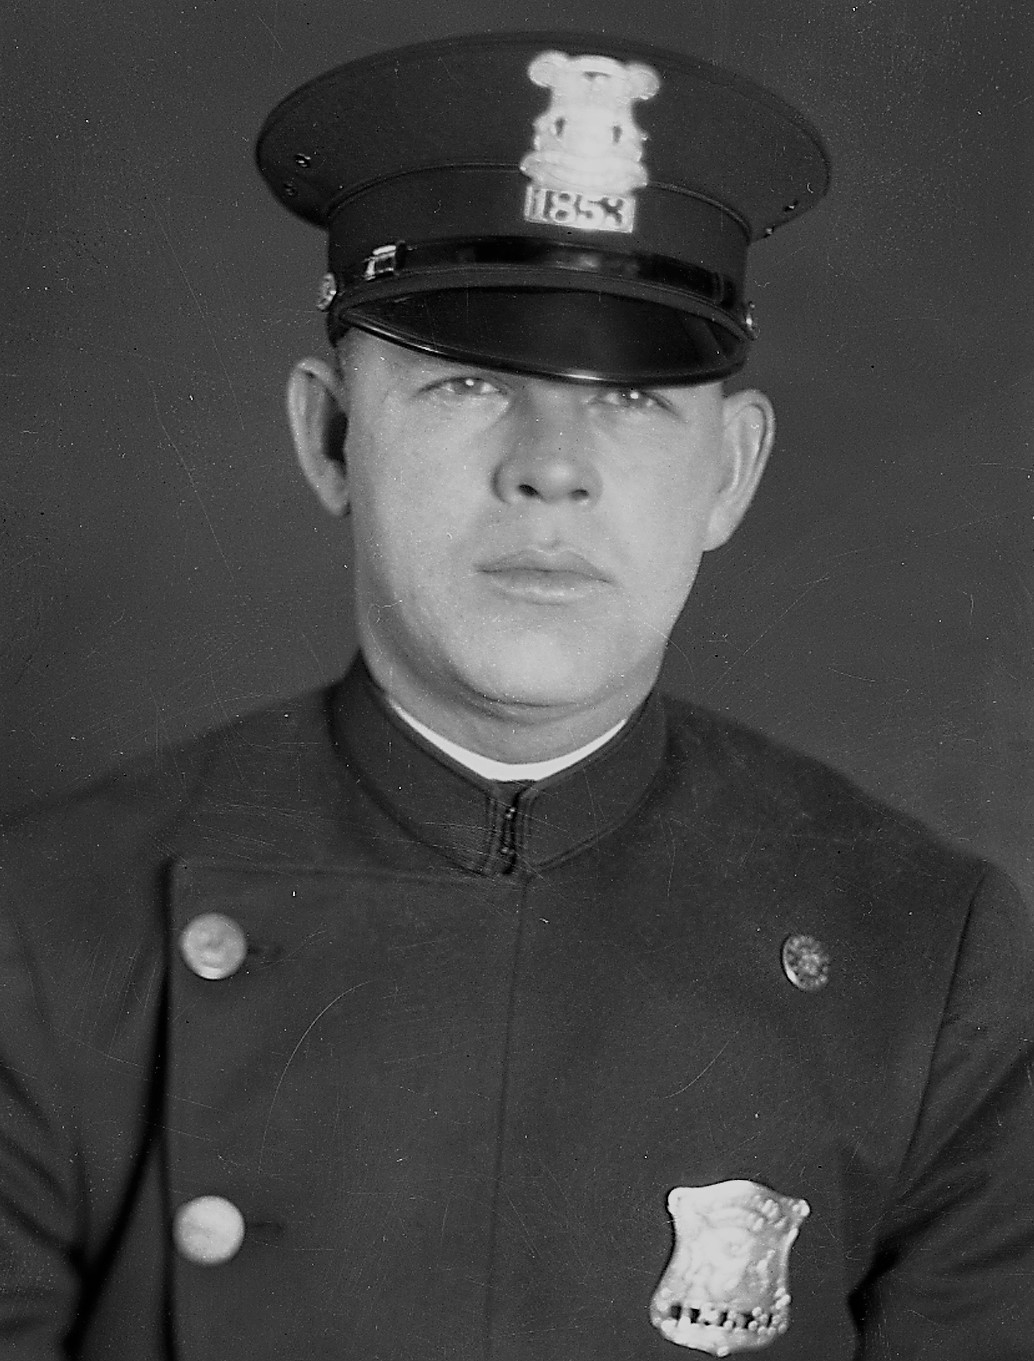 Police Officer Douglas W. Minton | Detroit Police Department, Michigan